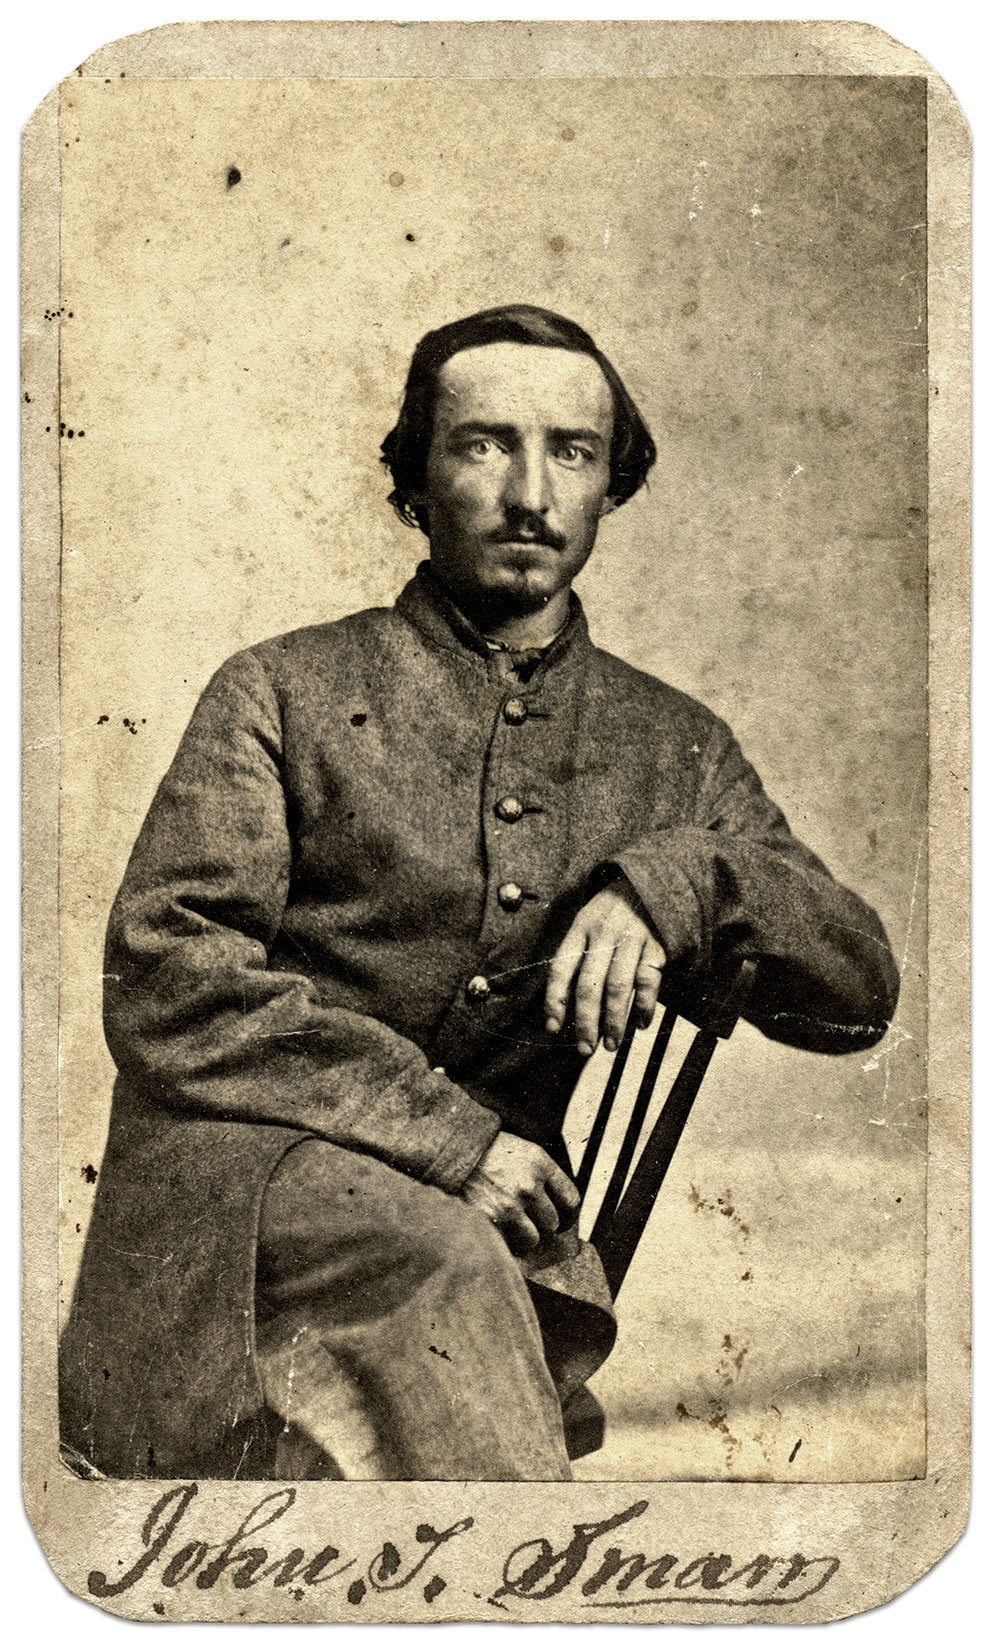 Carte de visite by Terrill's Sunbeam Gallery of Chicago, Ill. The late John Sickles Collection.